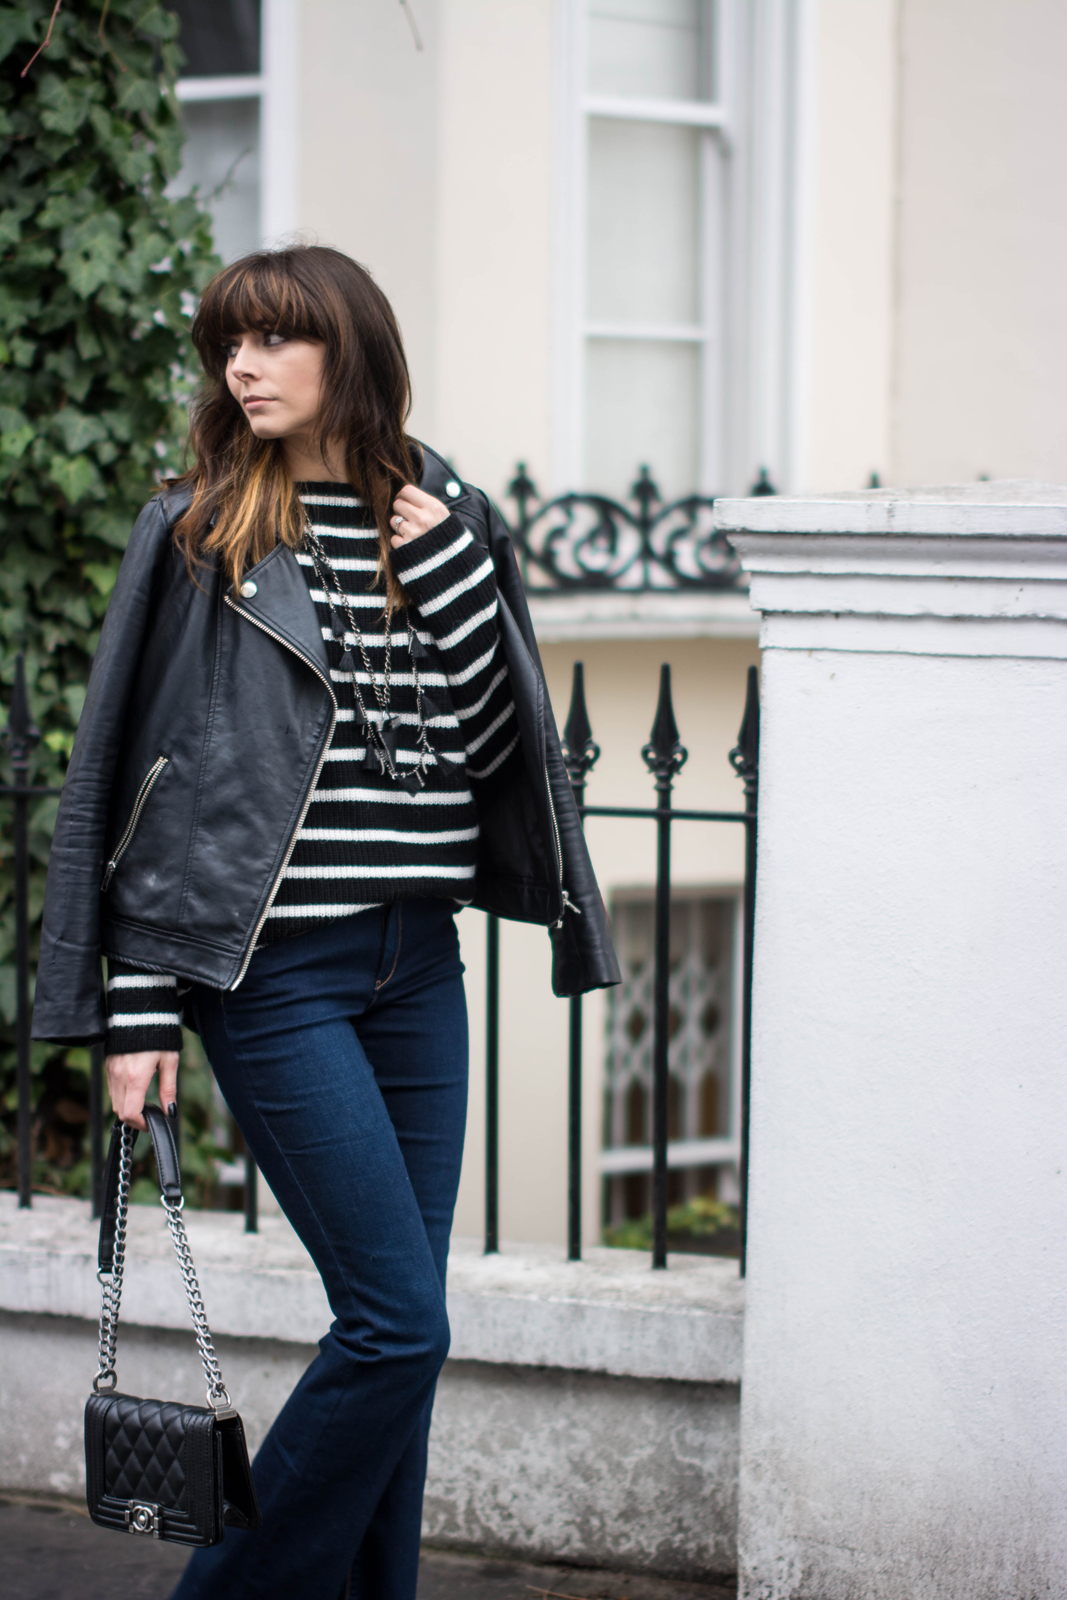 EJSTYLE - Zara flared jeans, Zara black white striped jumper sweater, leather biker jacket, Chanel boy bag black small, Givenchy shark tooth necklace, OOTD, Winter outfit, blogger